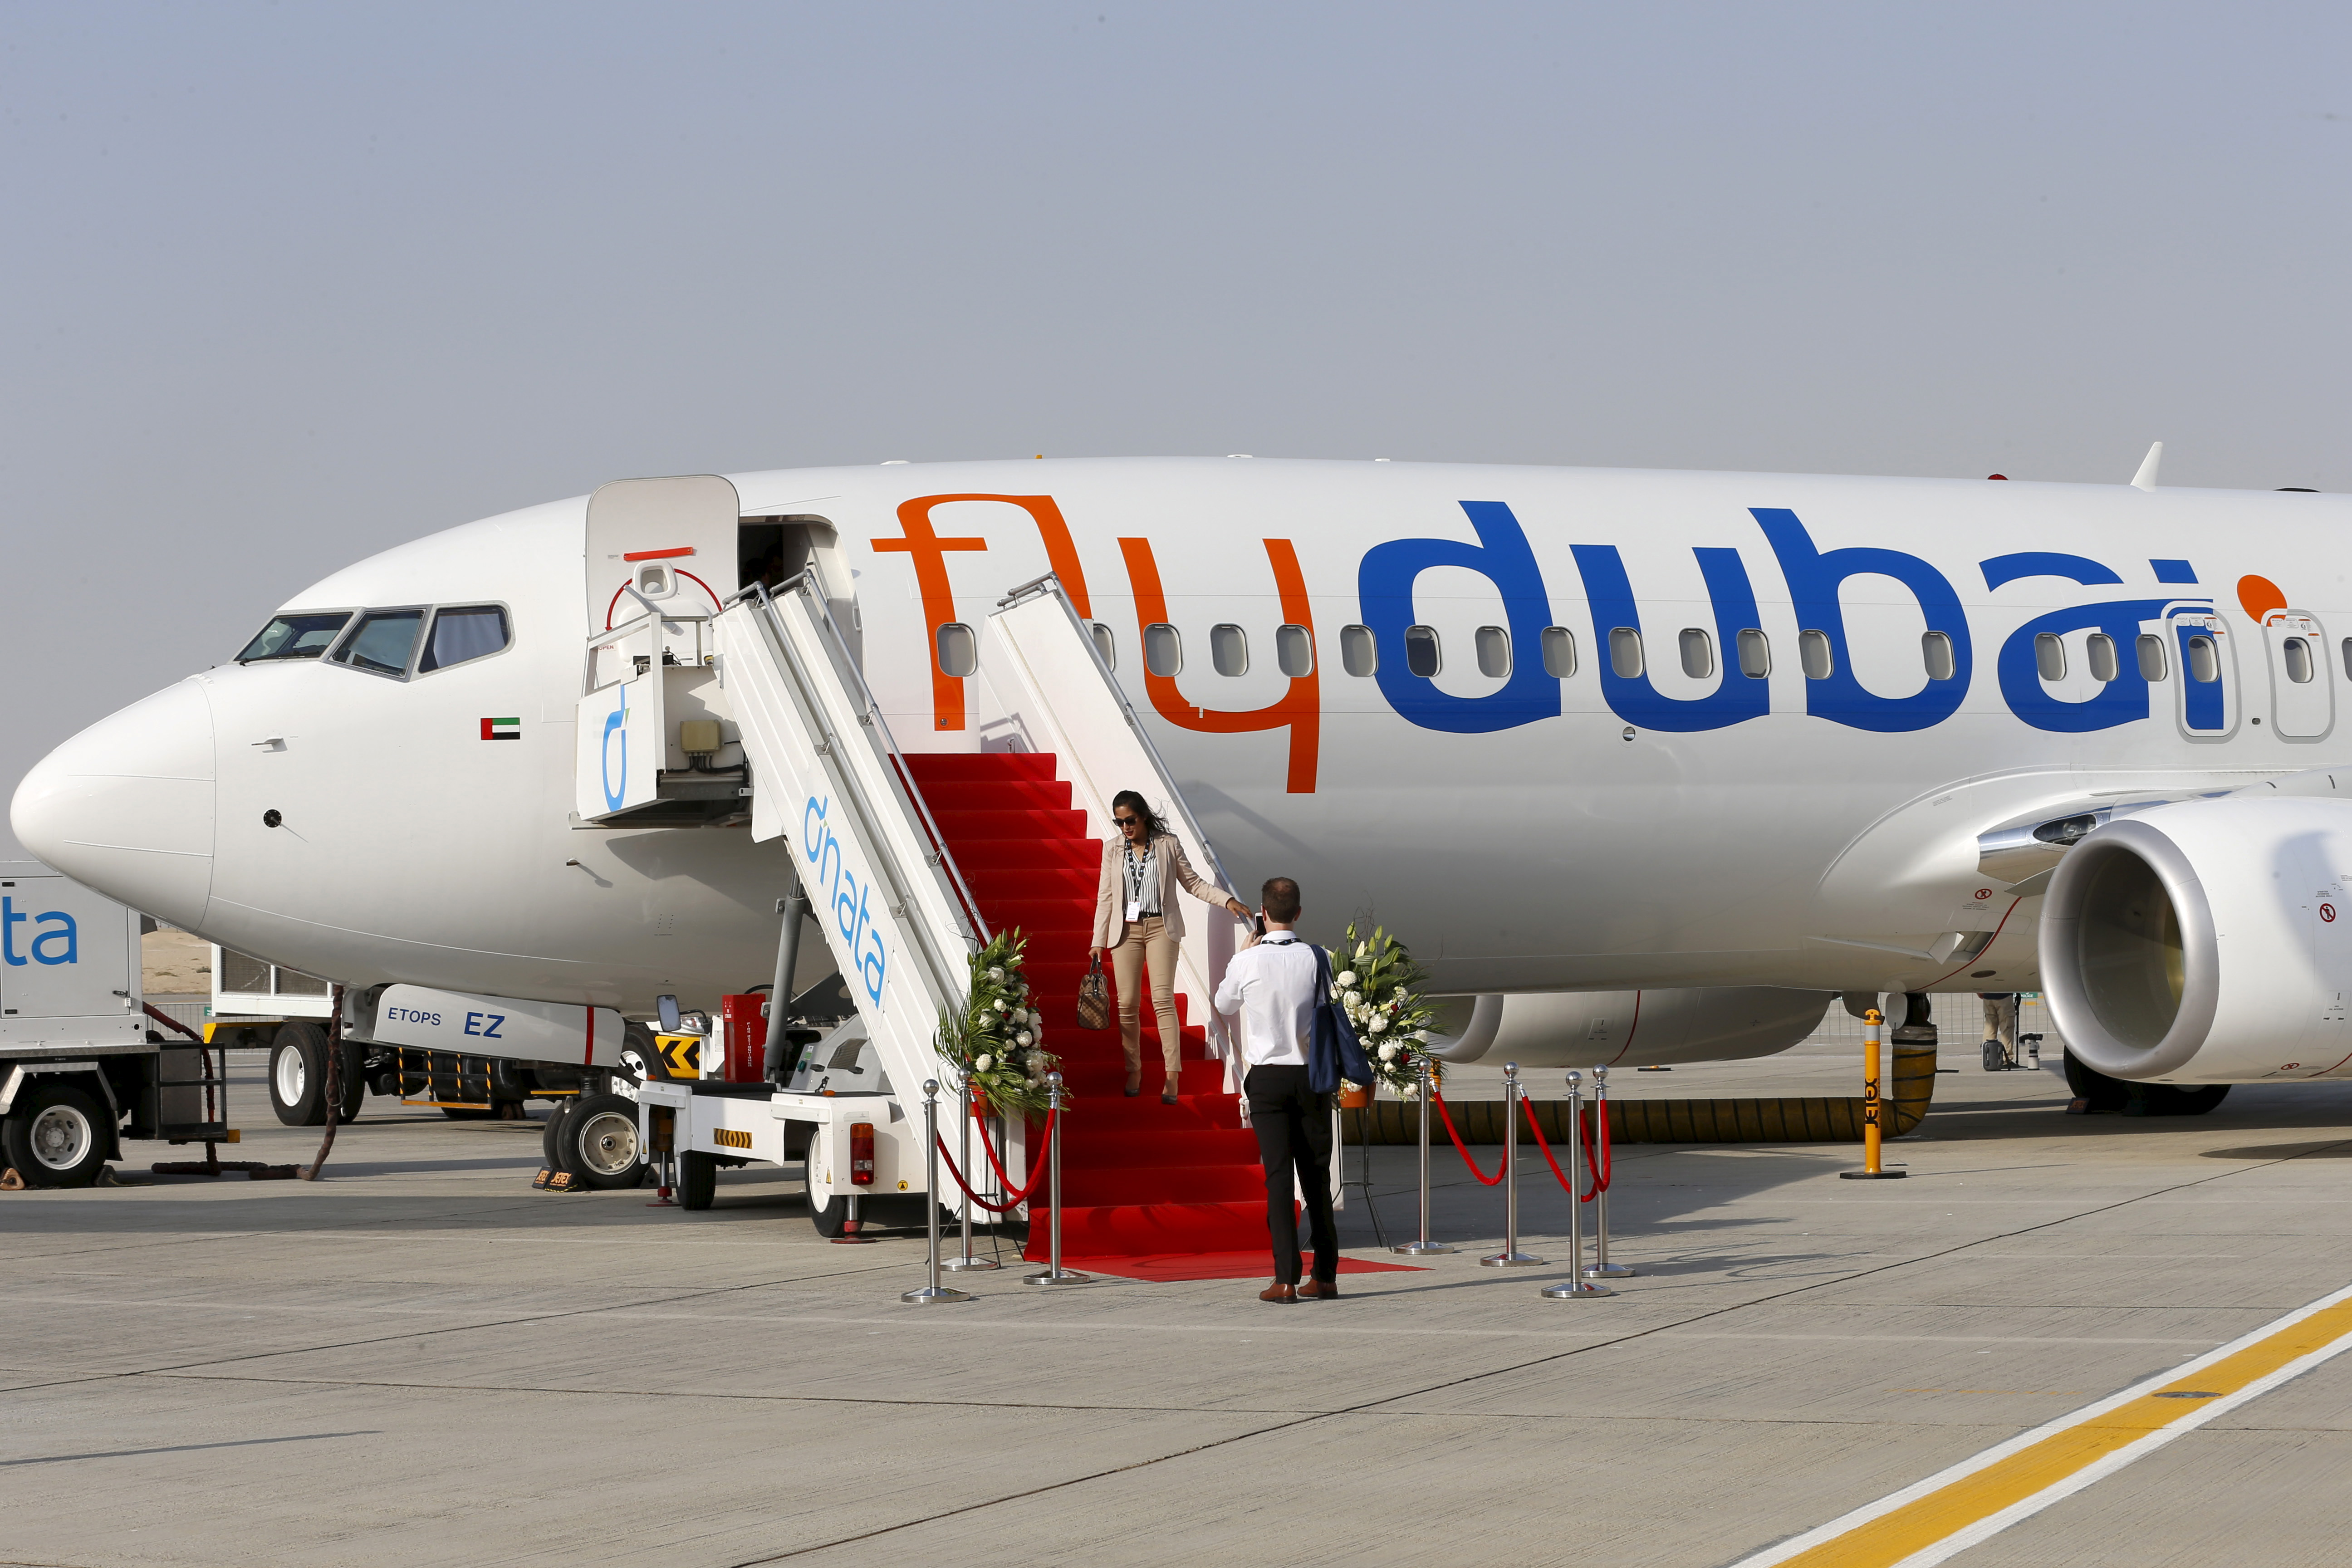 A Flydubai plane is pictured at the Dubai Airshow November 8, 2015. The biennial event will be held November 8-12. REUTERS/Ahmed Jadallah  - RTS60U5